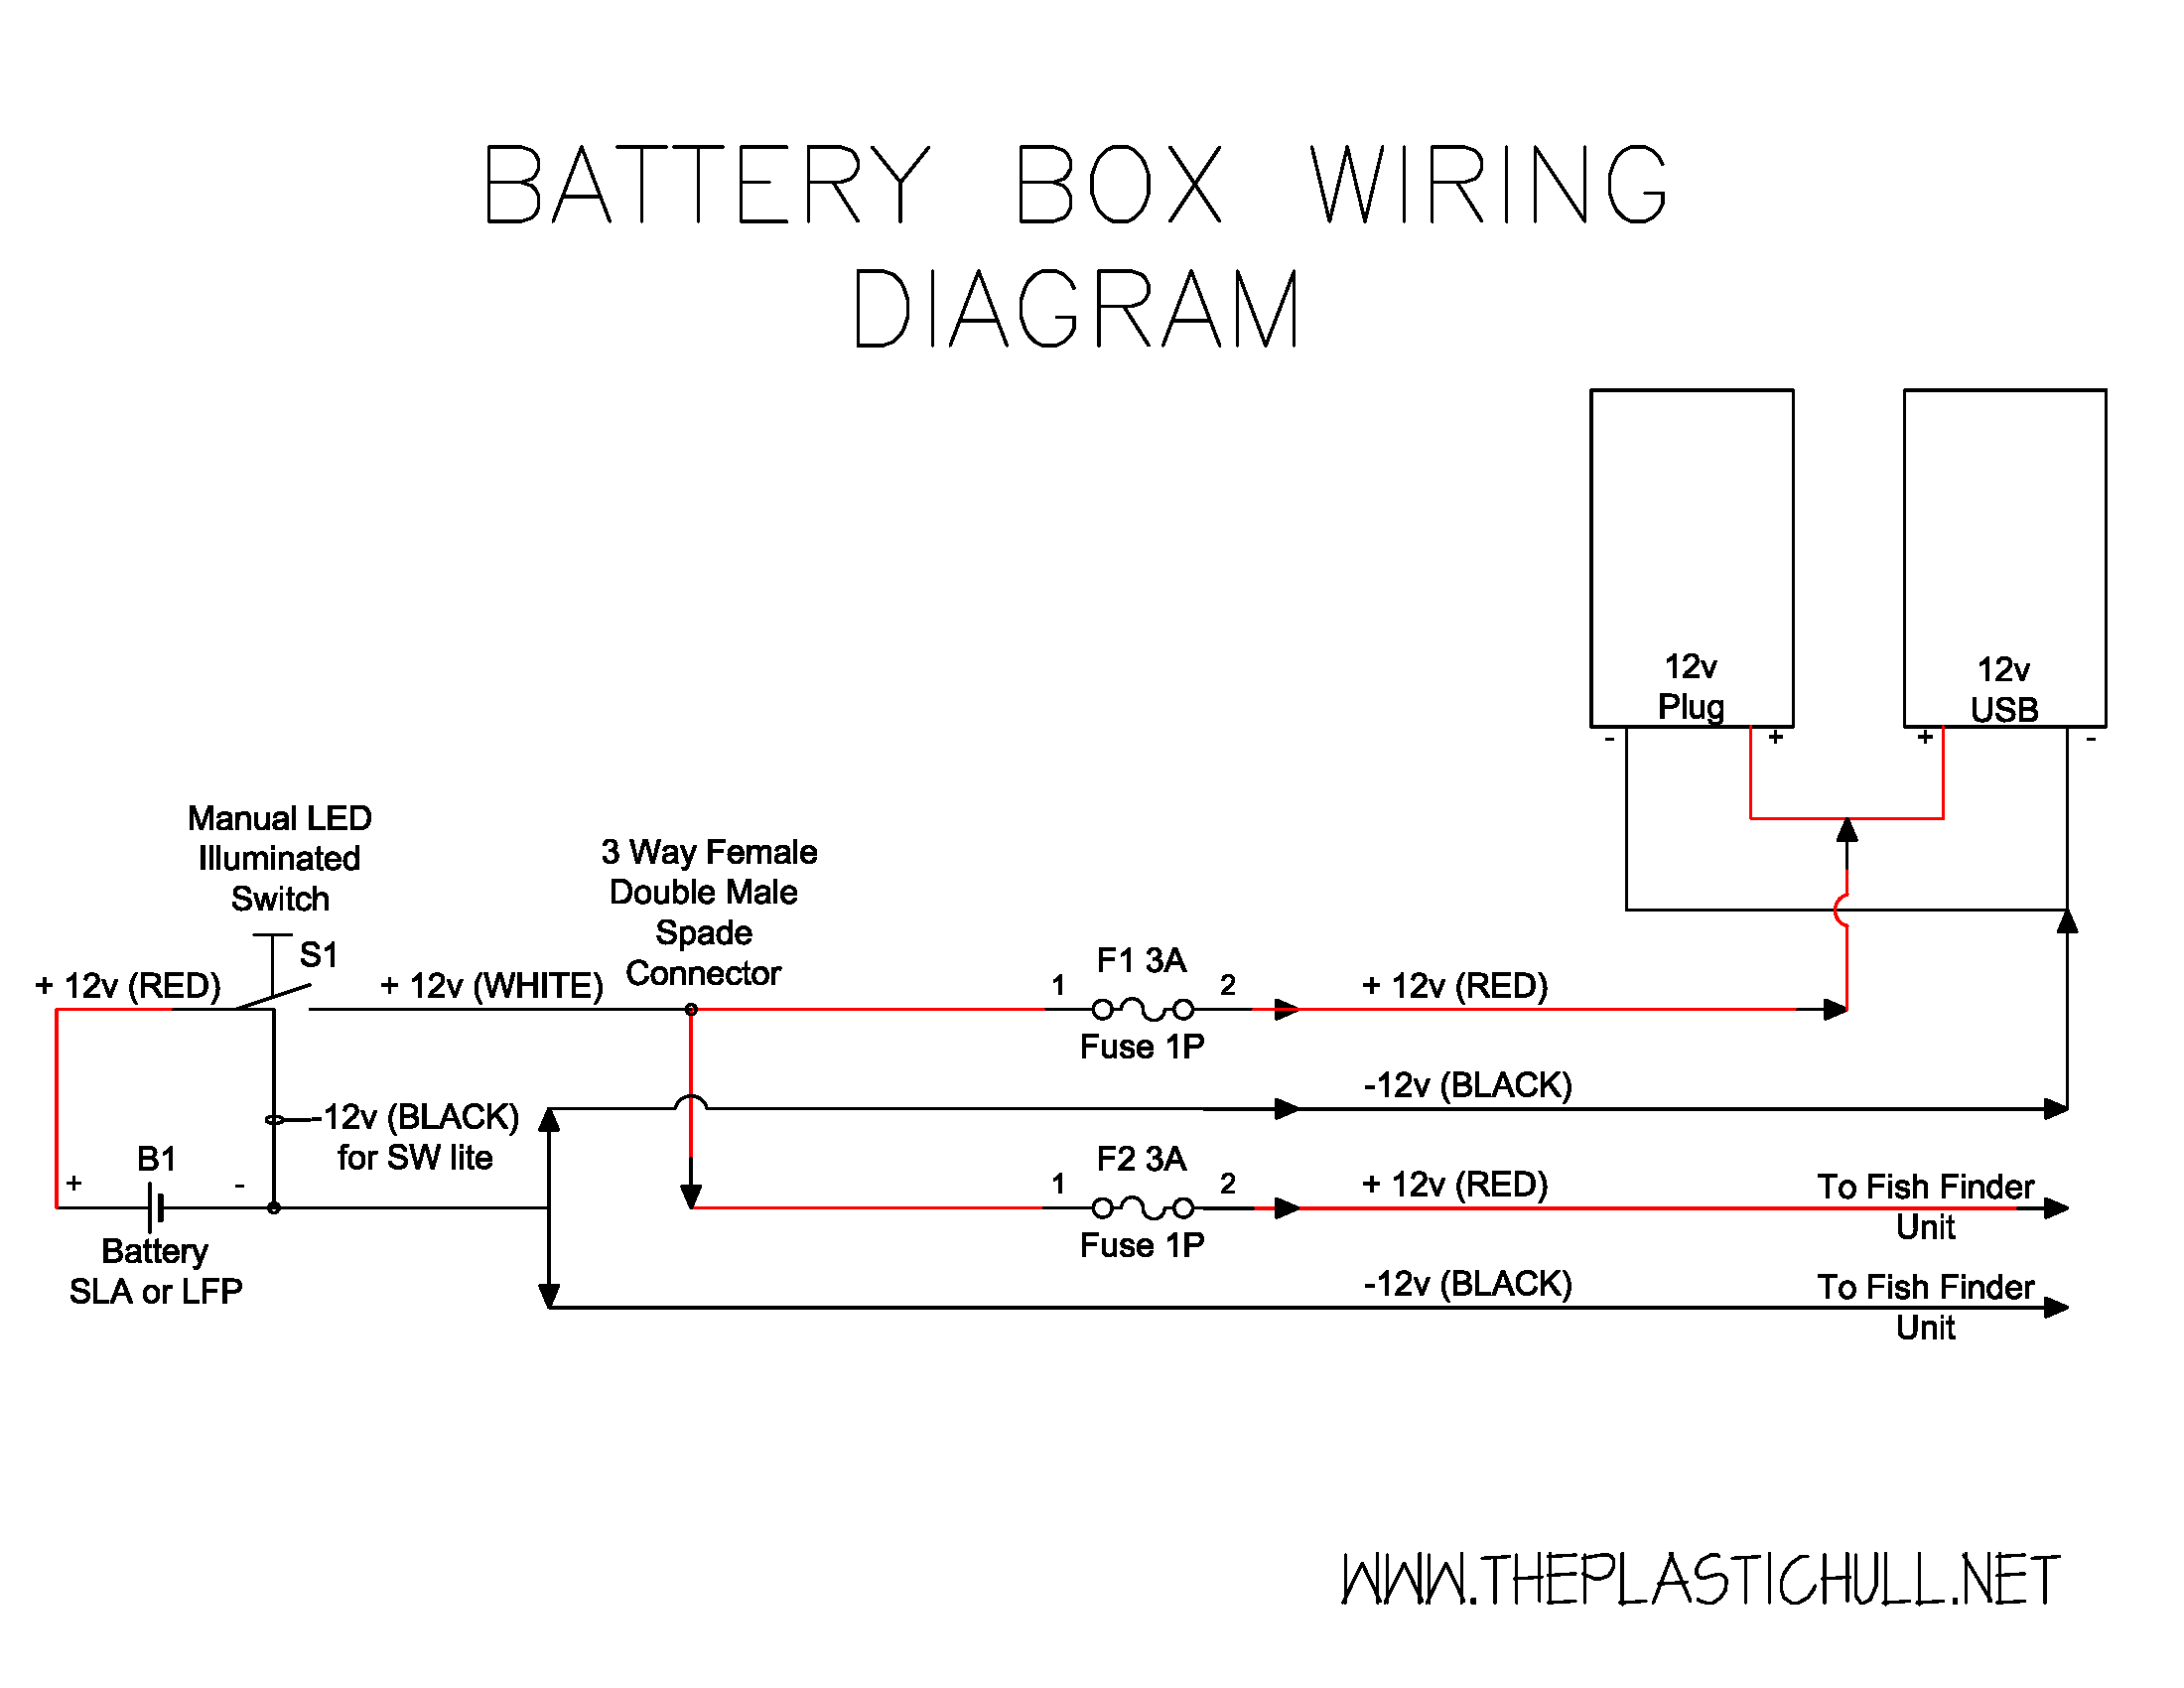 phone outlet wiring diagram for pioneer radio battery box archives the plastic hull